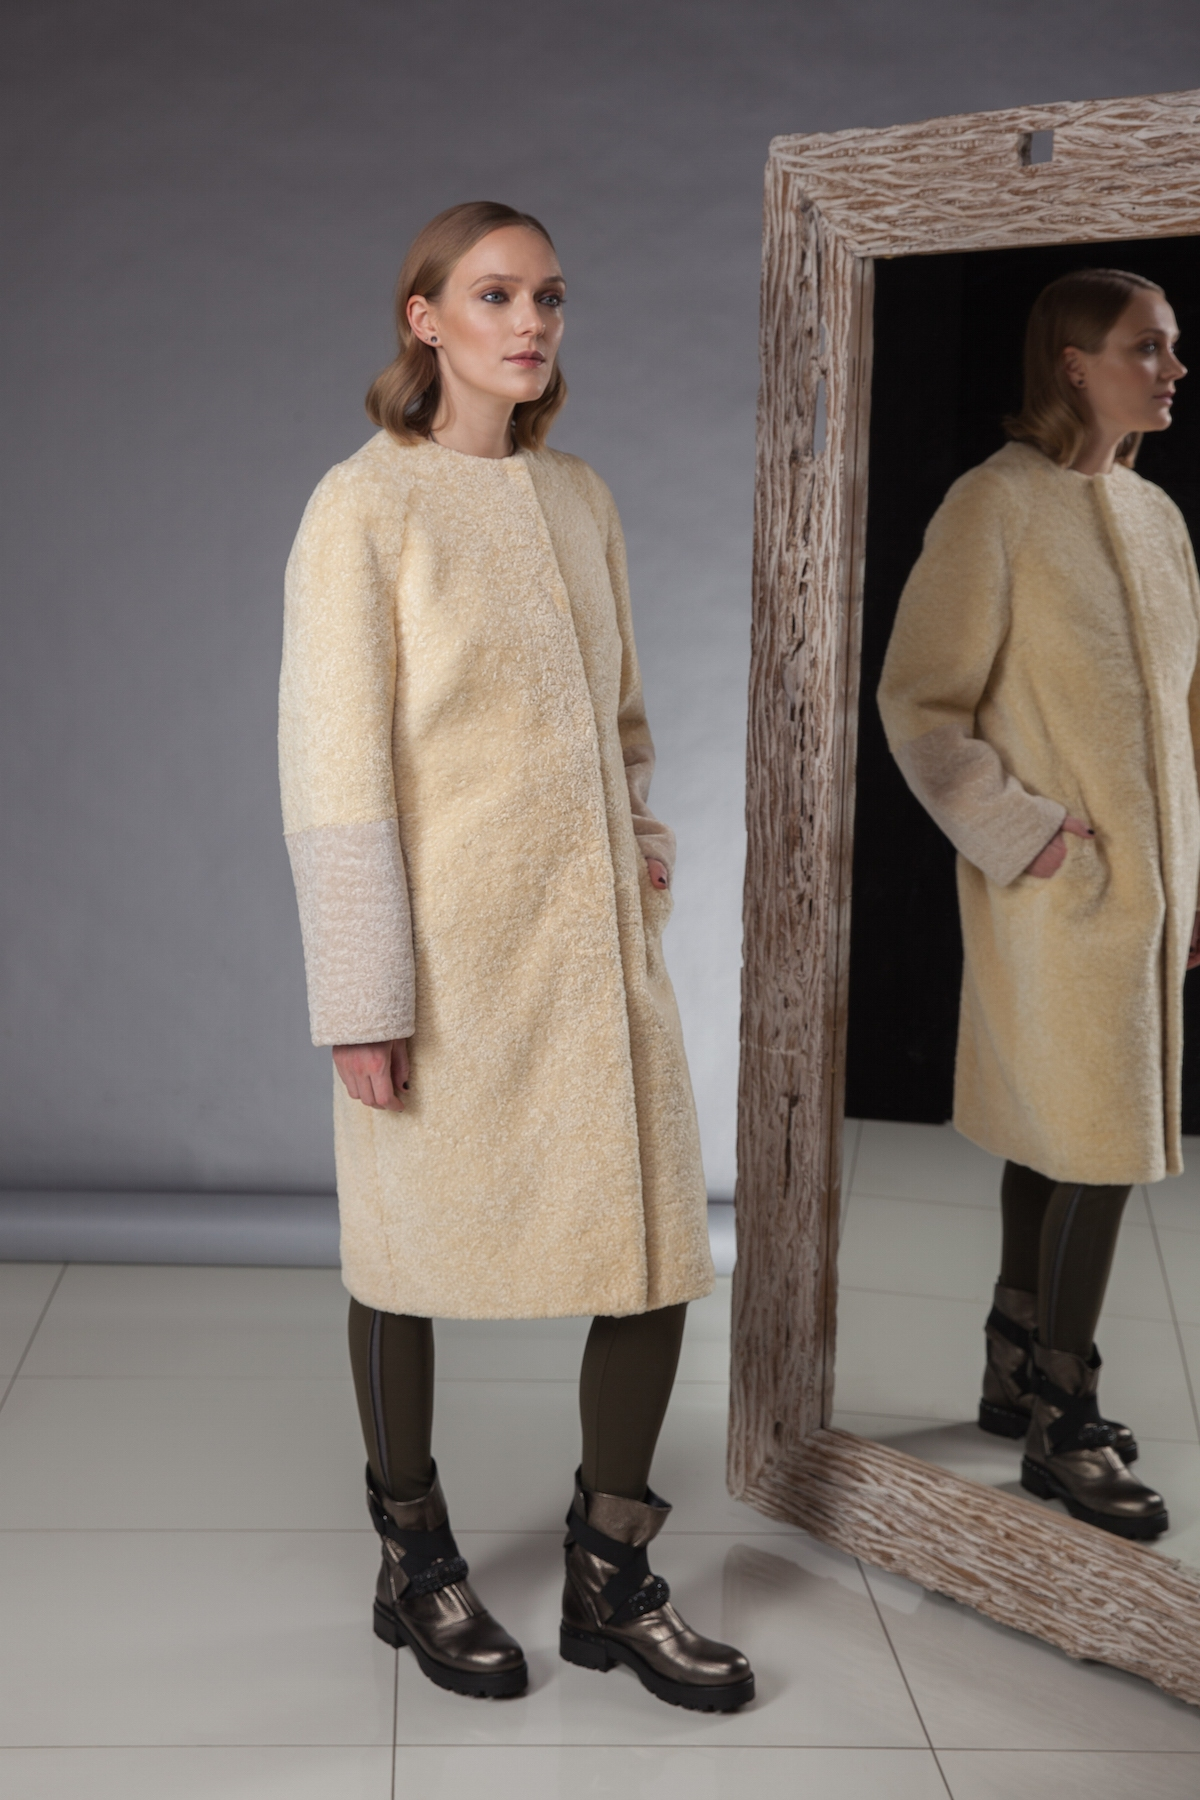 especially soft and light sheepskin coat decorated with fox fur made by Silta Mada fur studio in Vilnius.